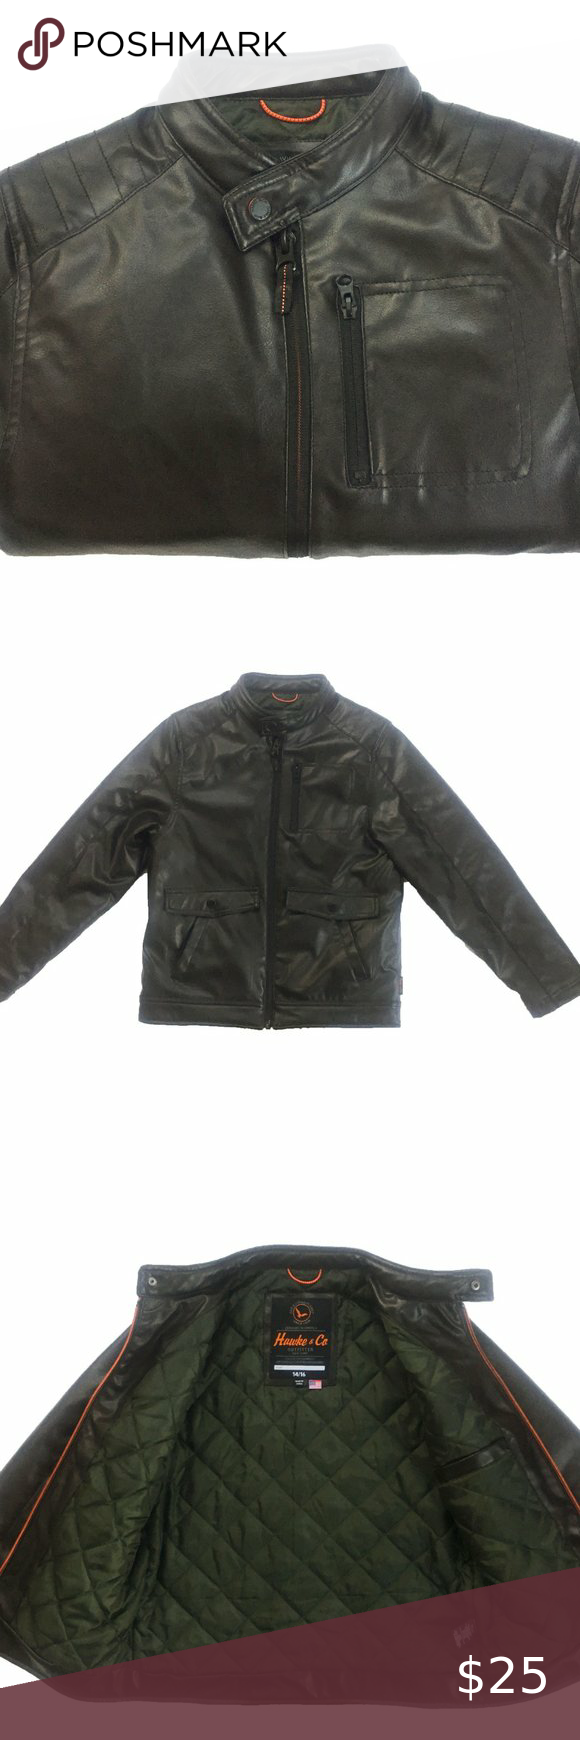 Hawke Co Outfitter Jacket Juniors Jackets Kids Jacket Outfitter [ 1740 x 580 Pixel ]